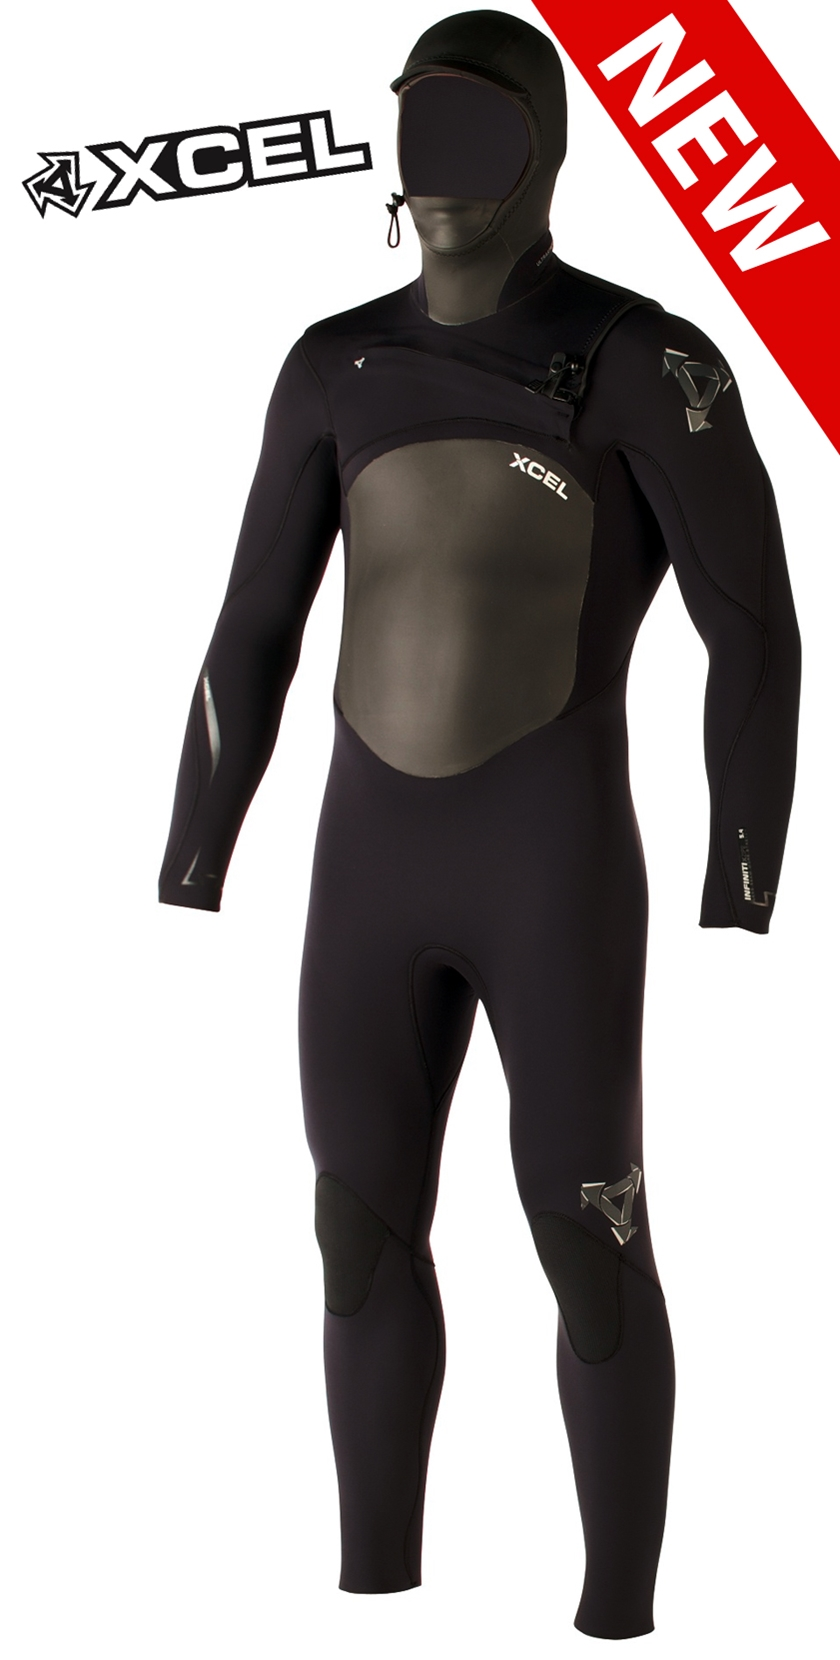 Xcel Infiniti X-Zip 5/4/3mm Men's Wetsuit - MB54ZH12-BLK